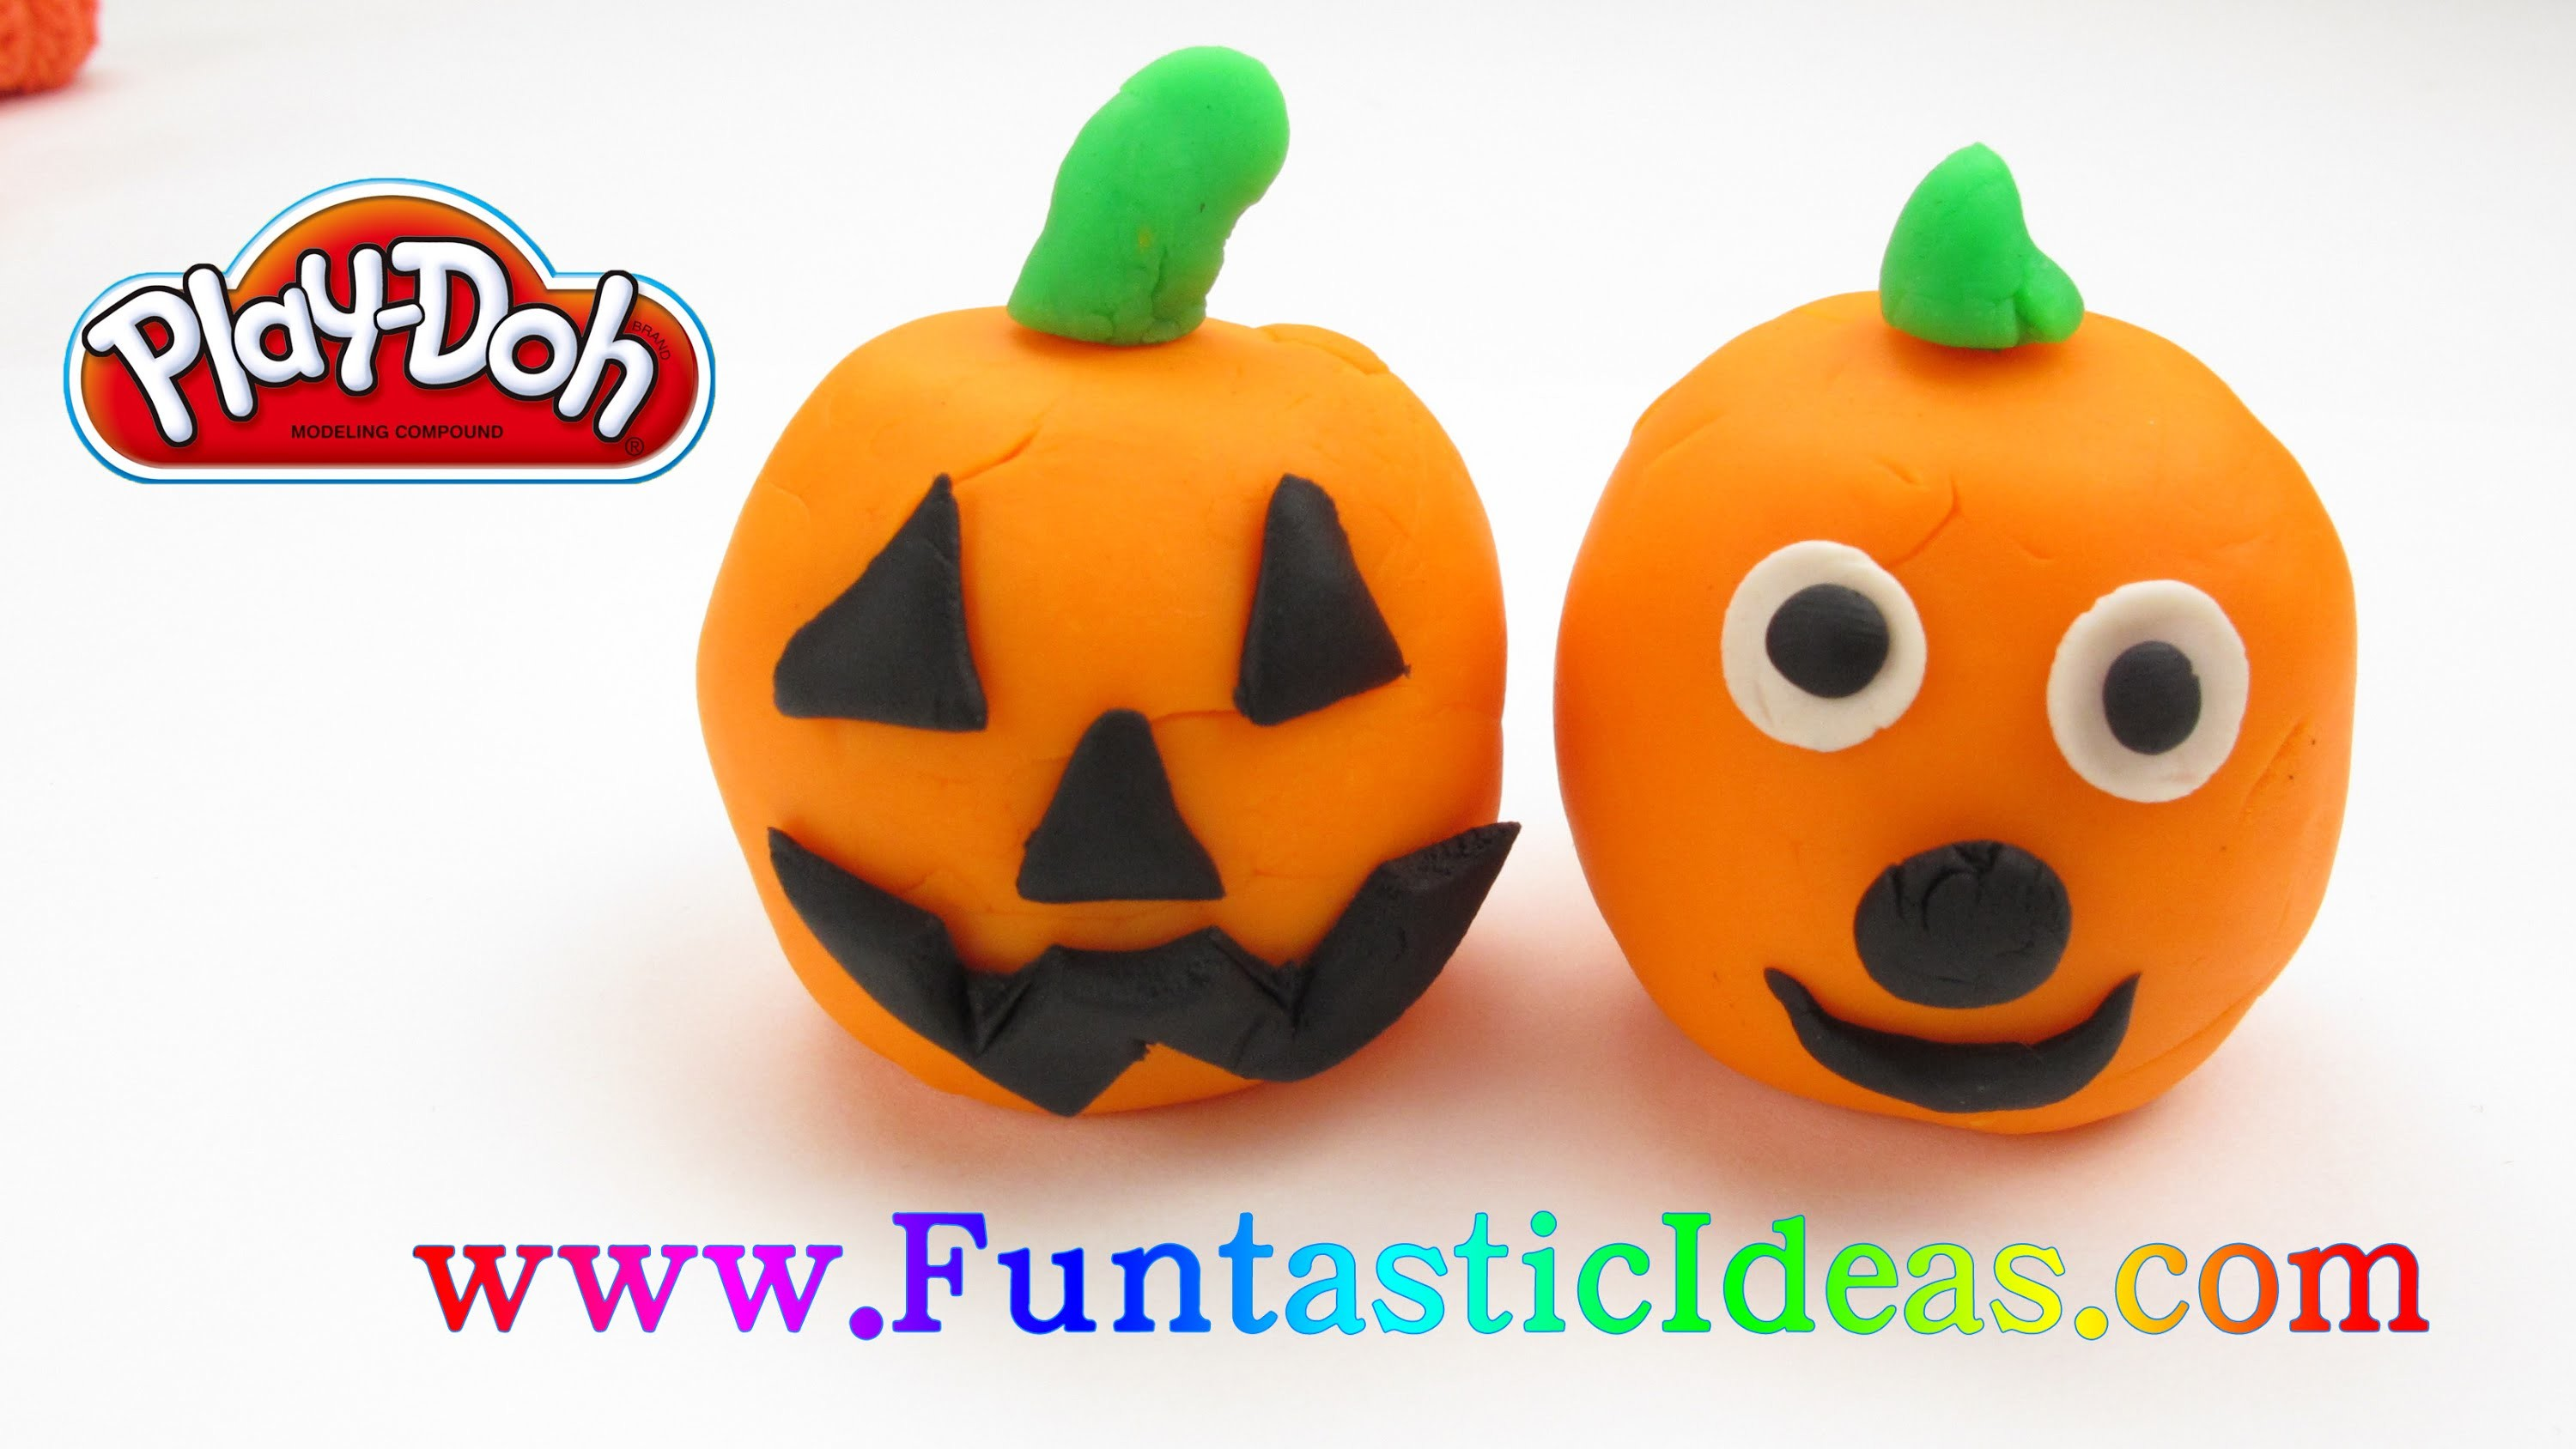 PlayDoh Pumpkin Jack-O-Lanterns Halloween - How to fun and easy for kids